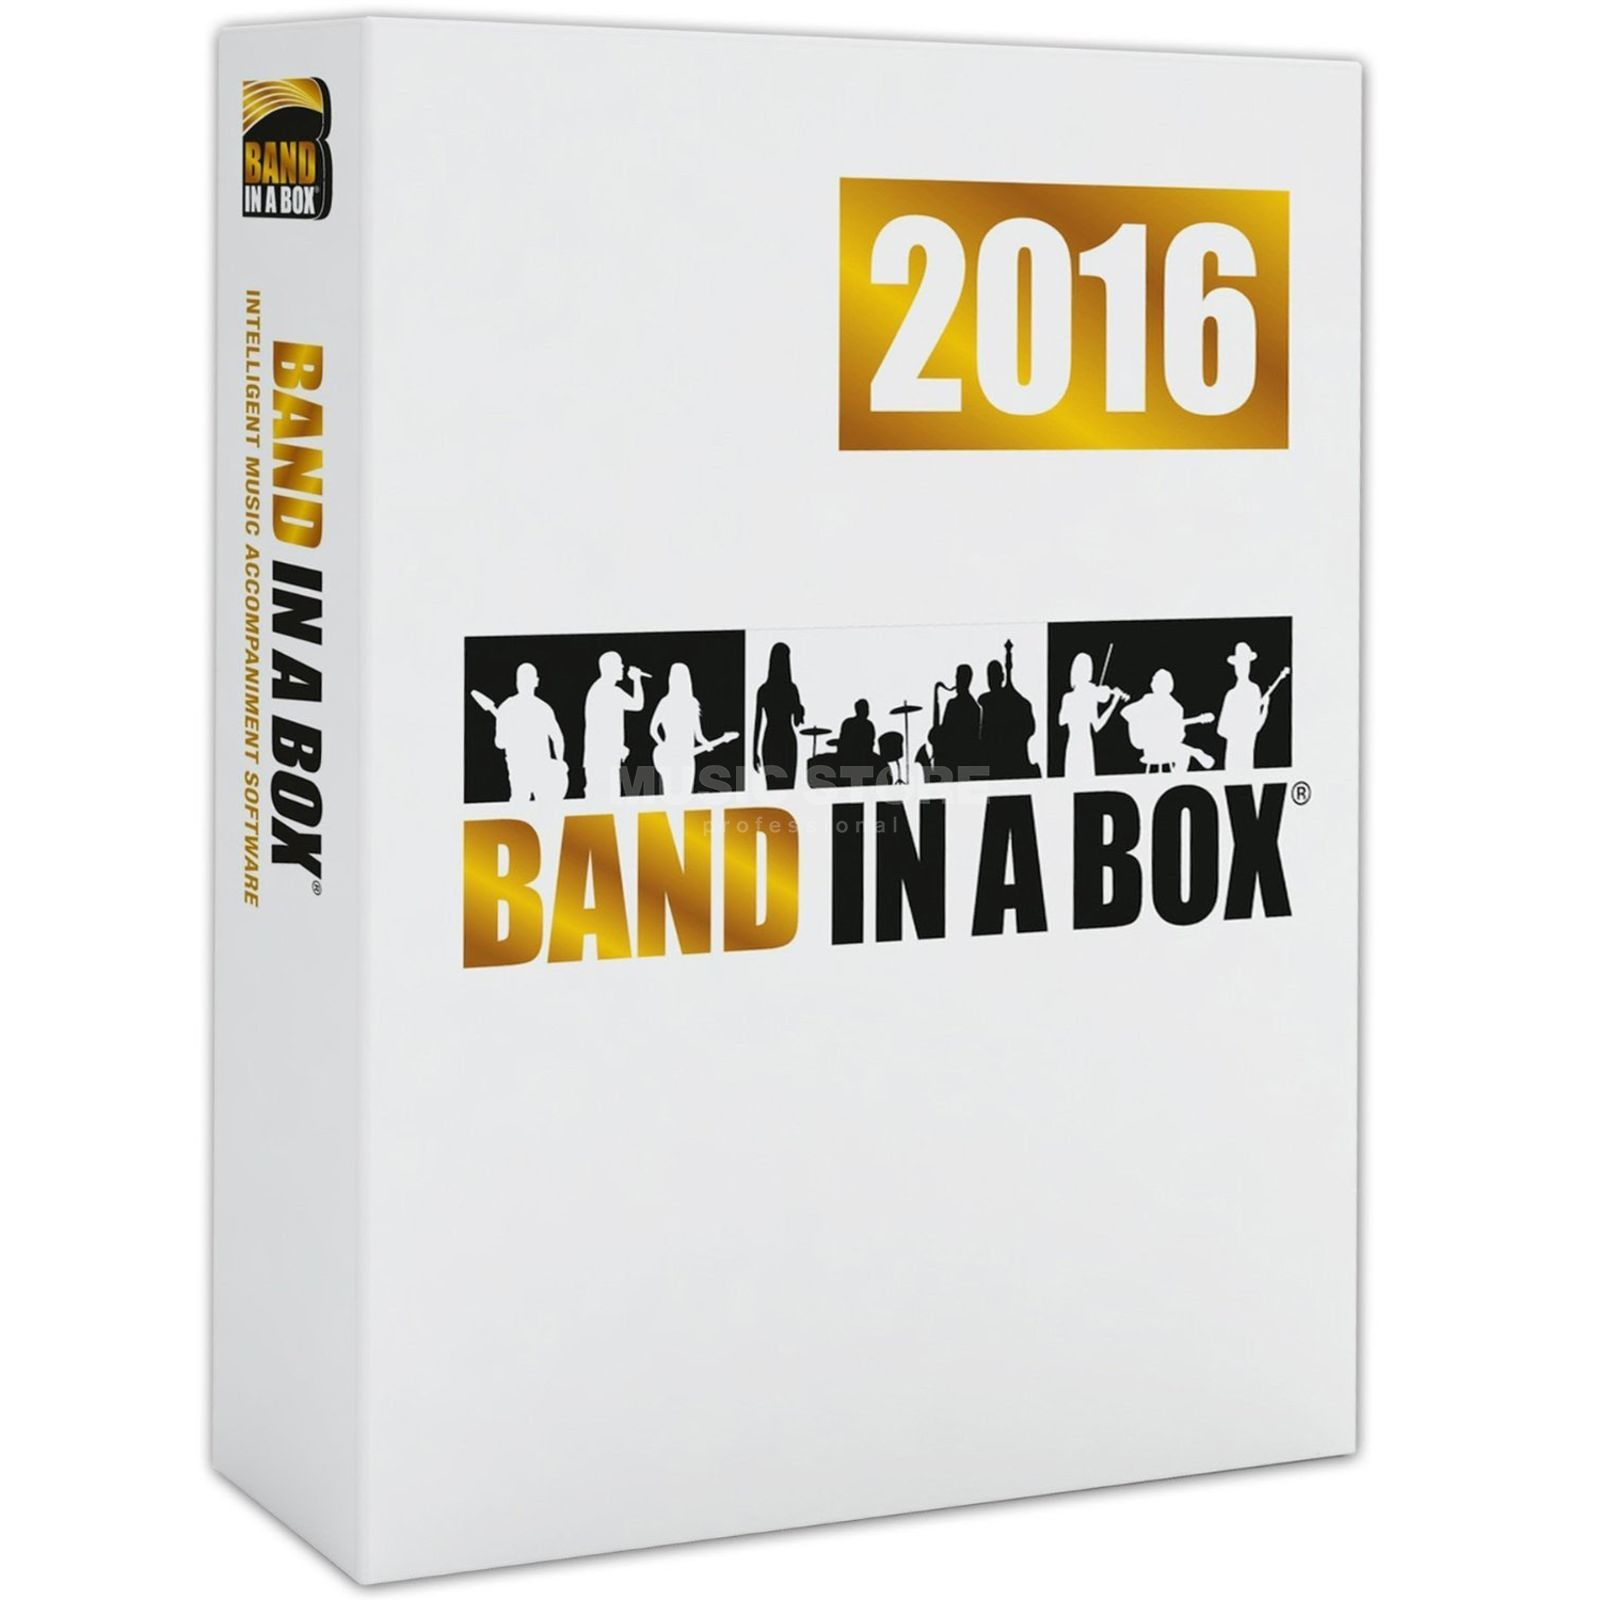 PG Music Band in a Box 2016 MEGAPAK PC DE Produktbild